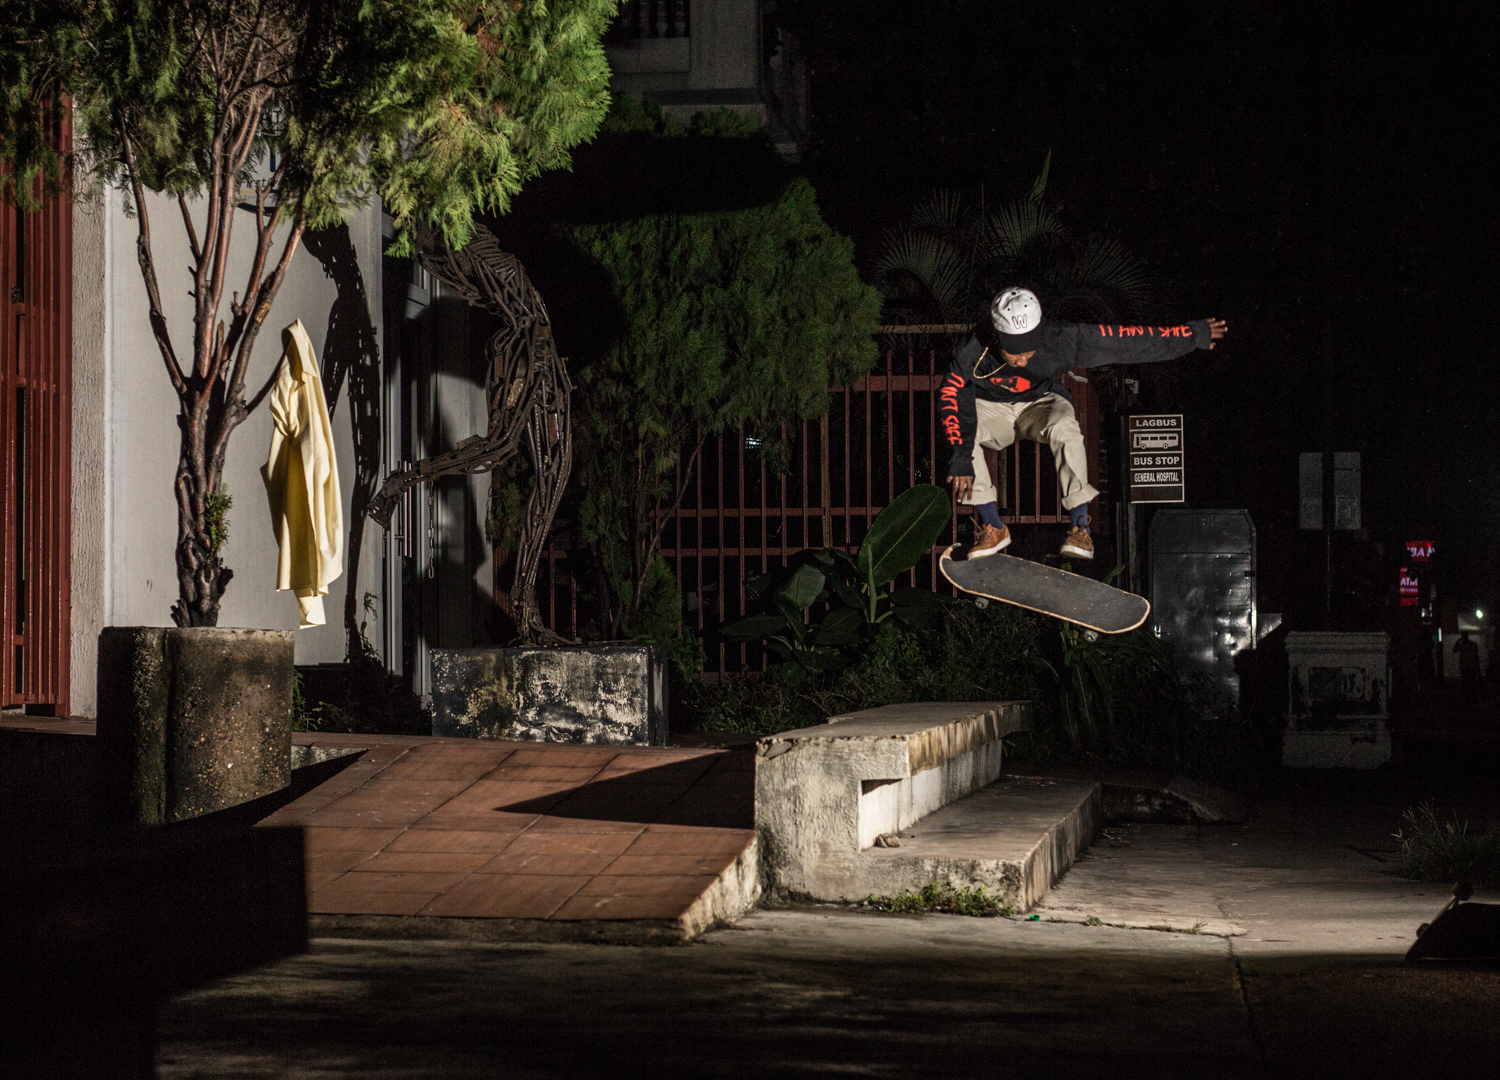 Kagiso Leburu with a backside flip in Lagos, Nigeria